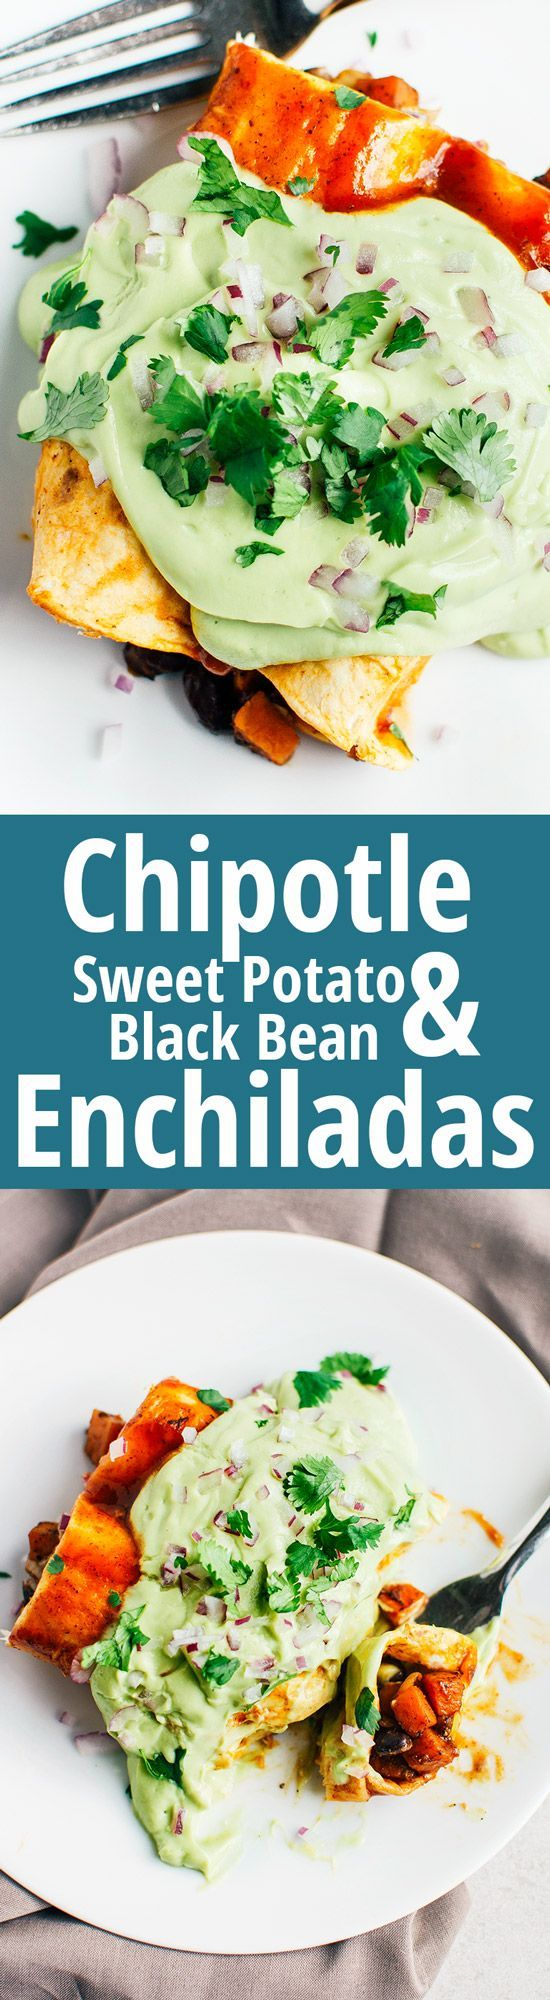 Chipotle Sweet Potato & Black Bean Enchiladas - These spicy enchiladas do not skimp on flavor, and just to be sure they are smothered in a delicious avocado cream. (Vegan & GF) | RECIPE at NomingthruLife.com